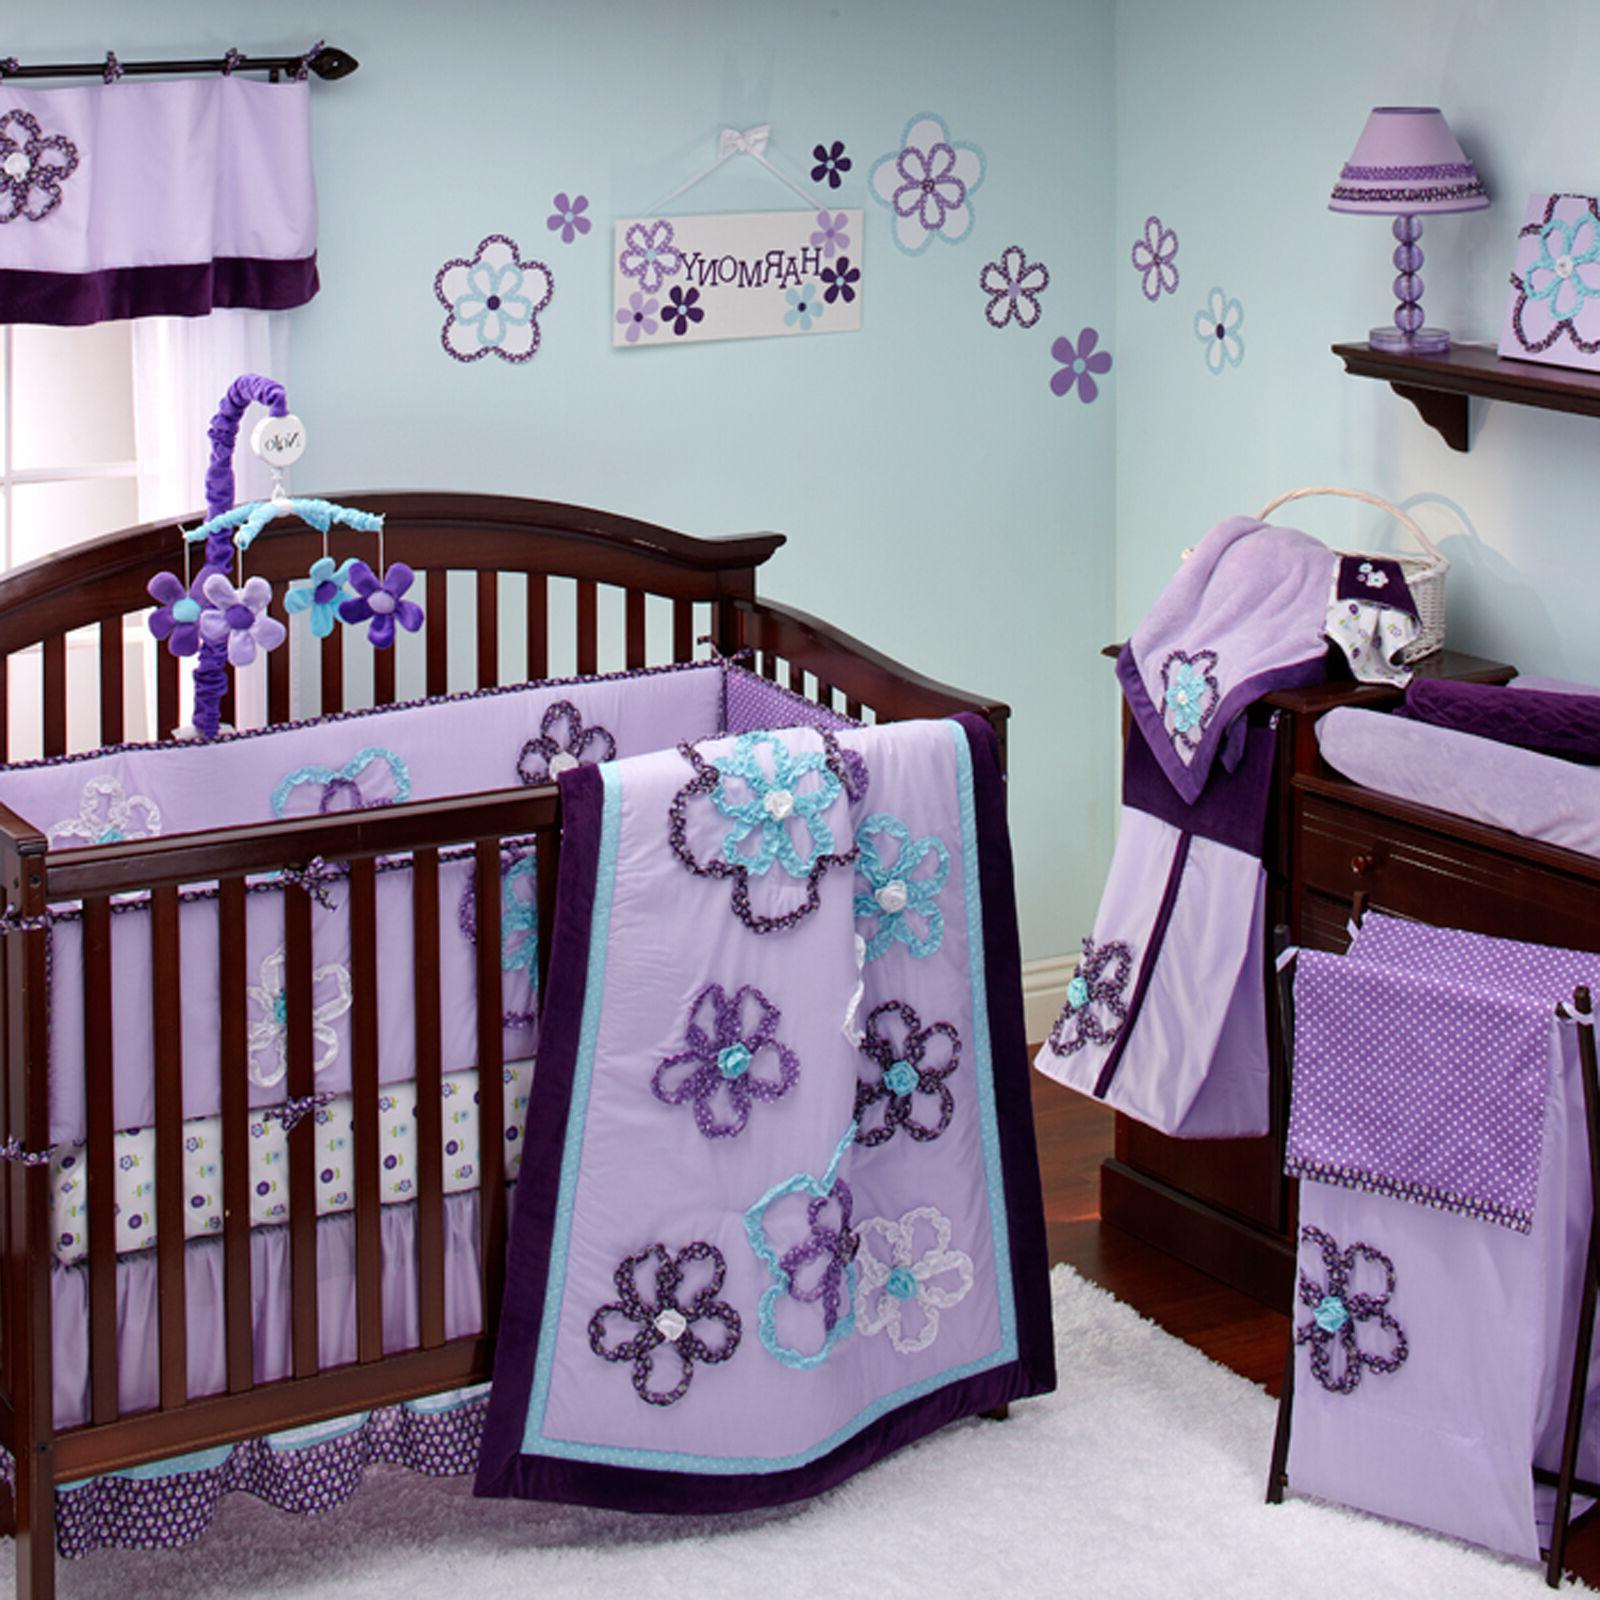 NoJo Harmony 8 Piece Crib Bedding Set